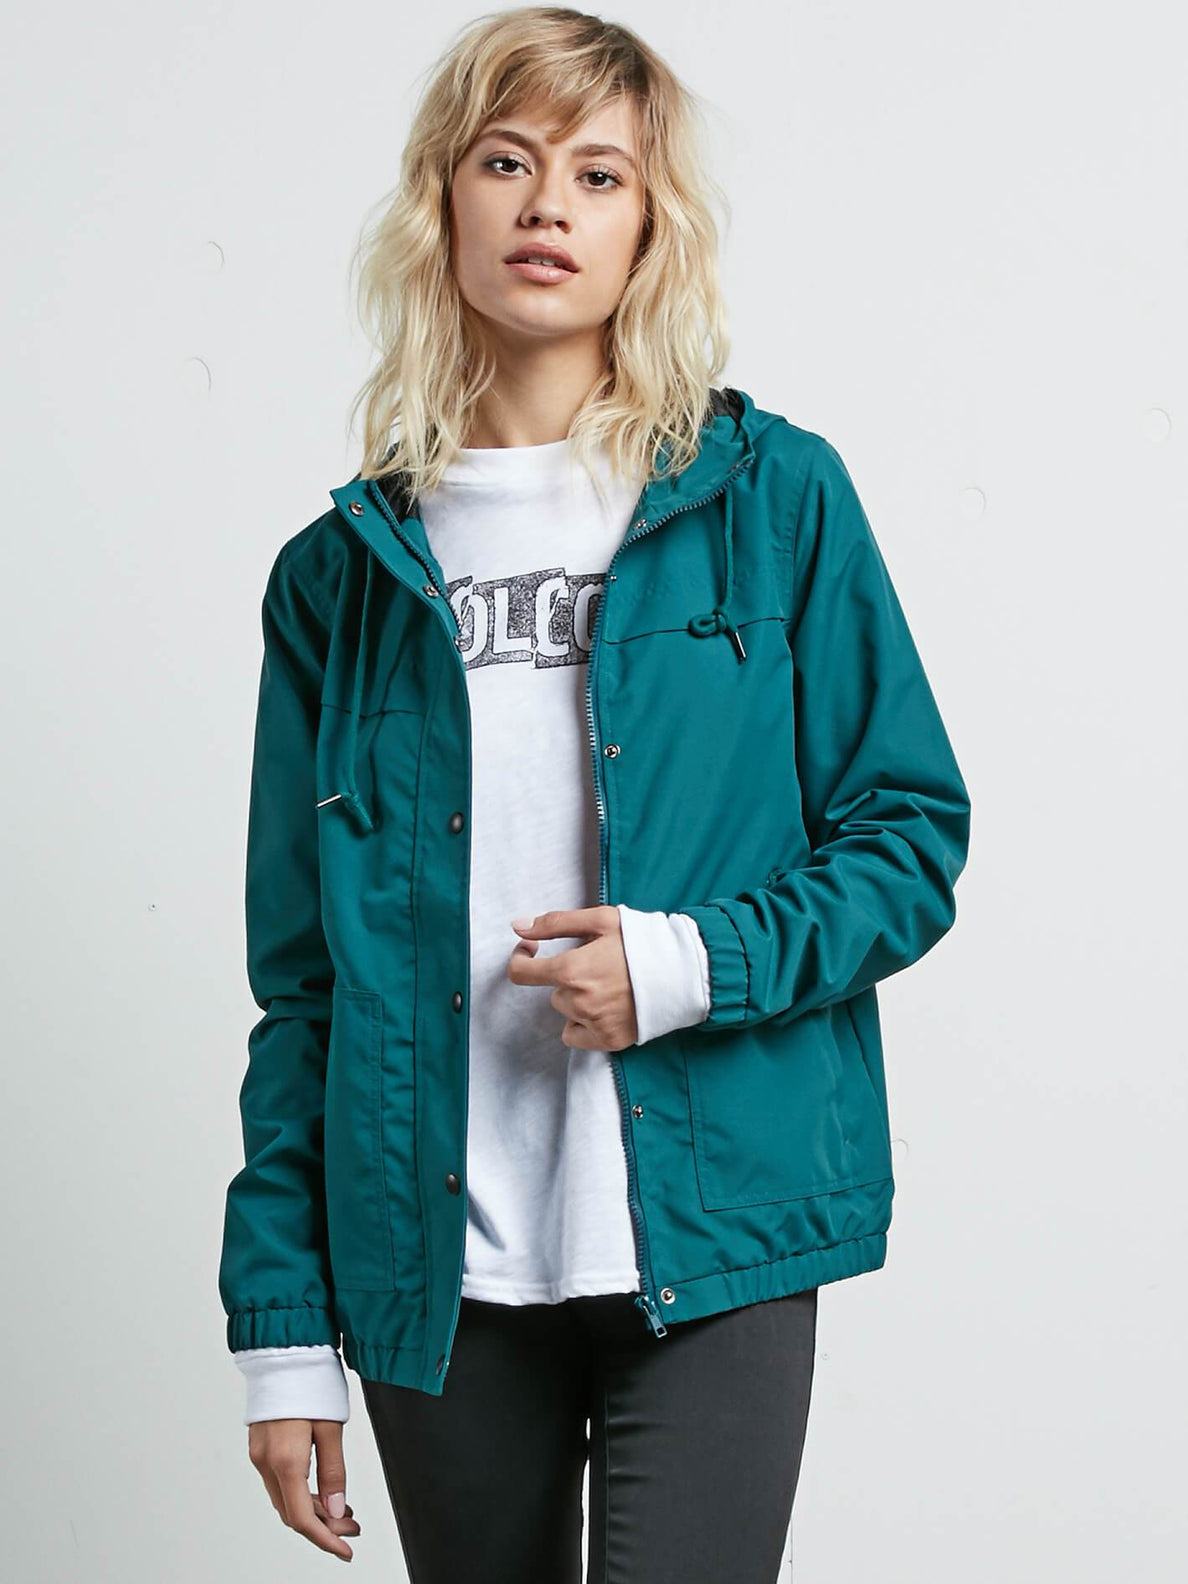 Enemy Stone Jacket In Midnight Green, Front View